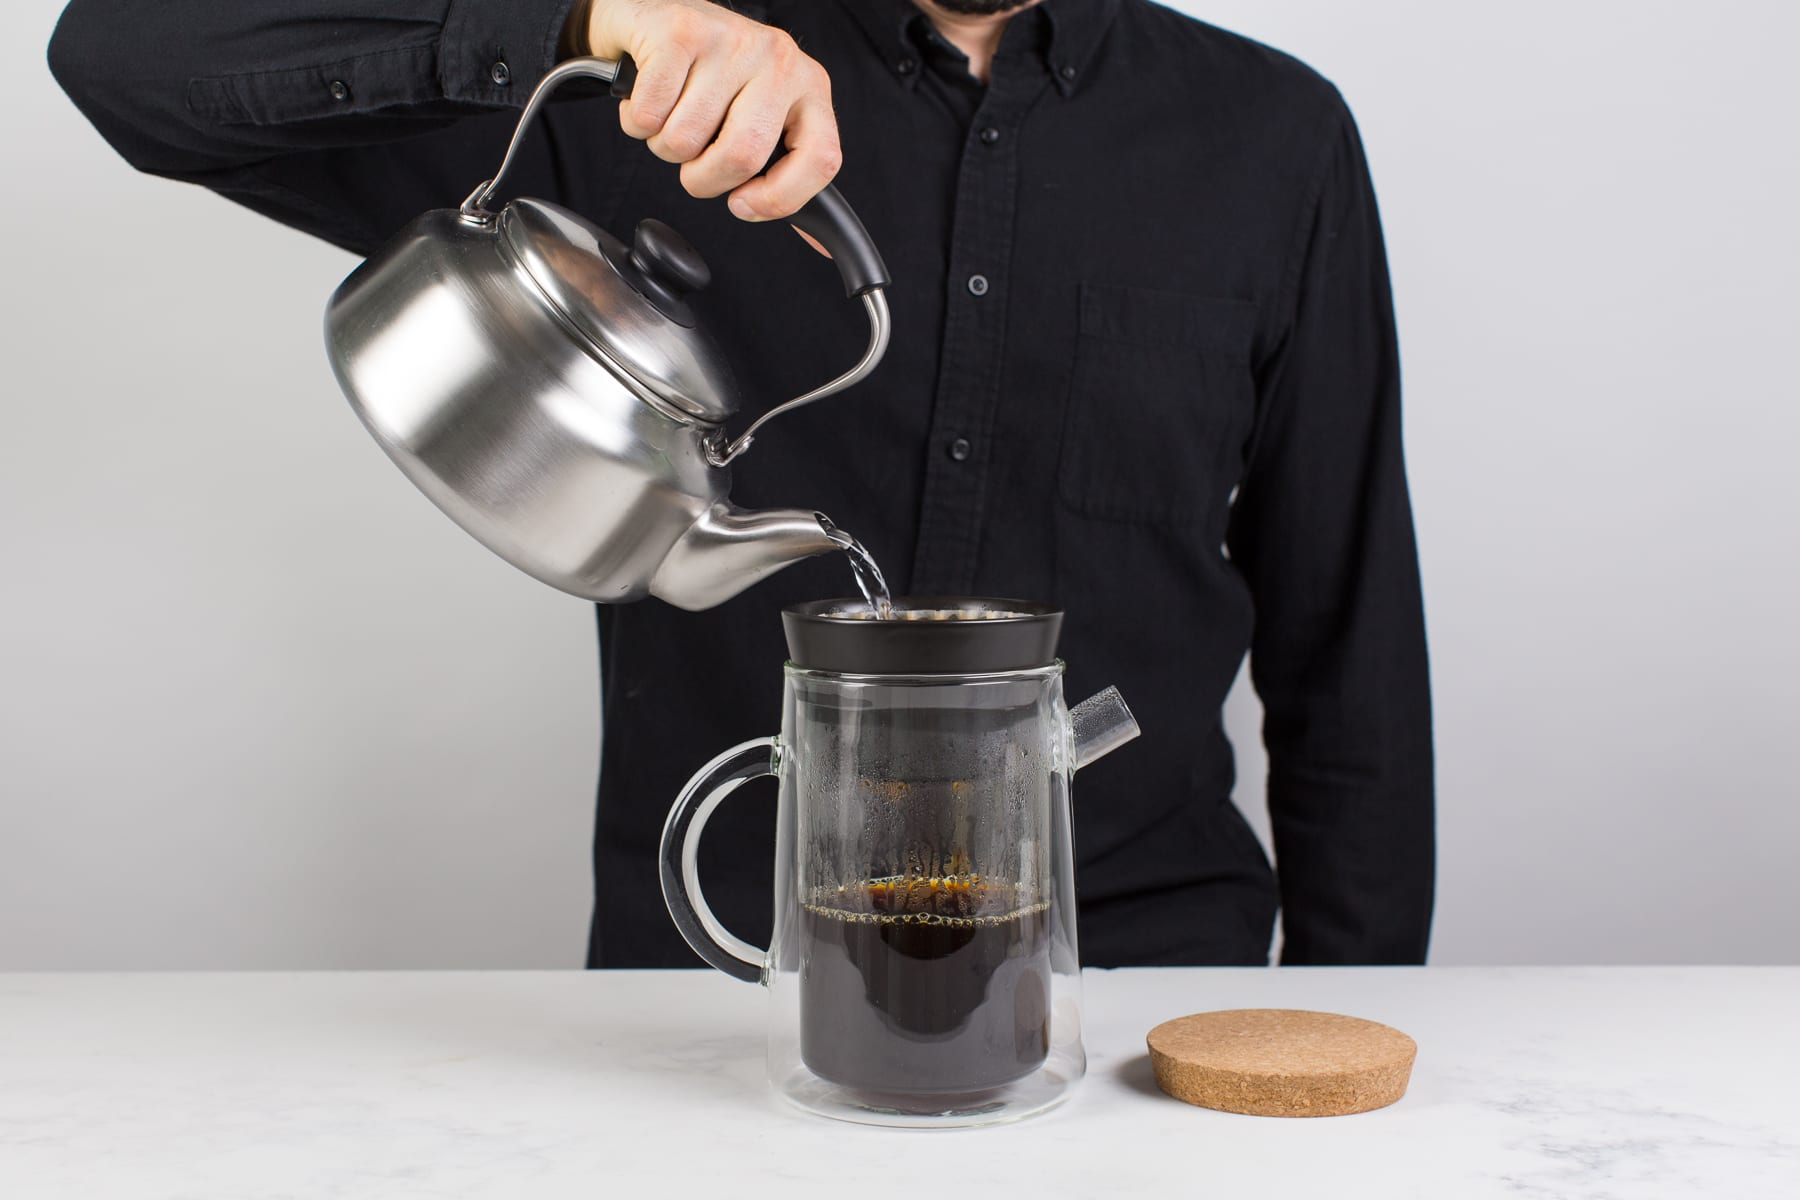 Coffee Maker Kickstarter : The Coffee Brewer That Allows You to Choose Between Pour Over, French Press, & Cold Brew ...